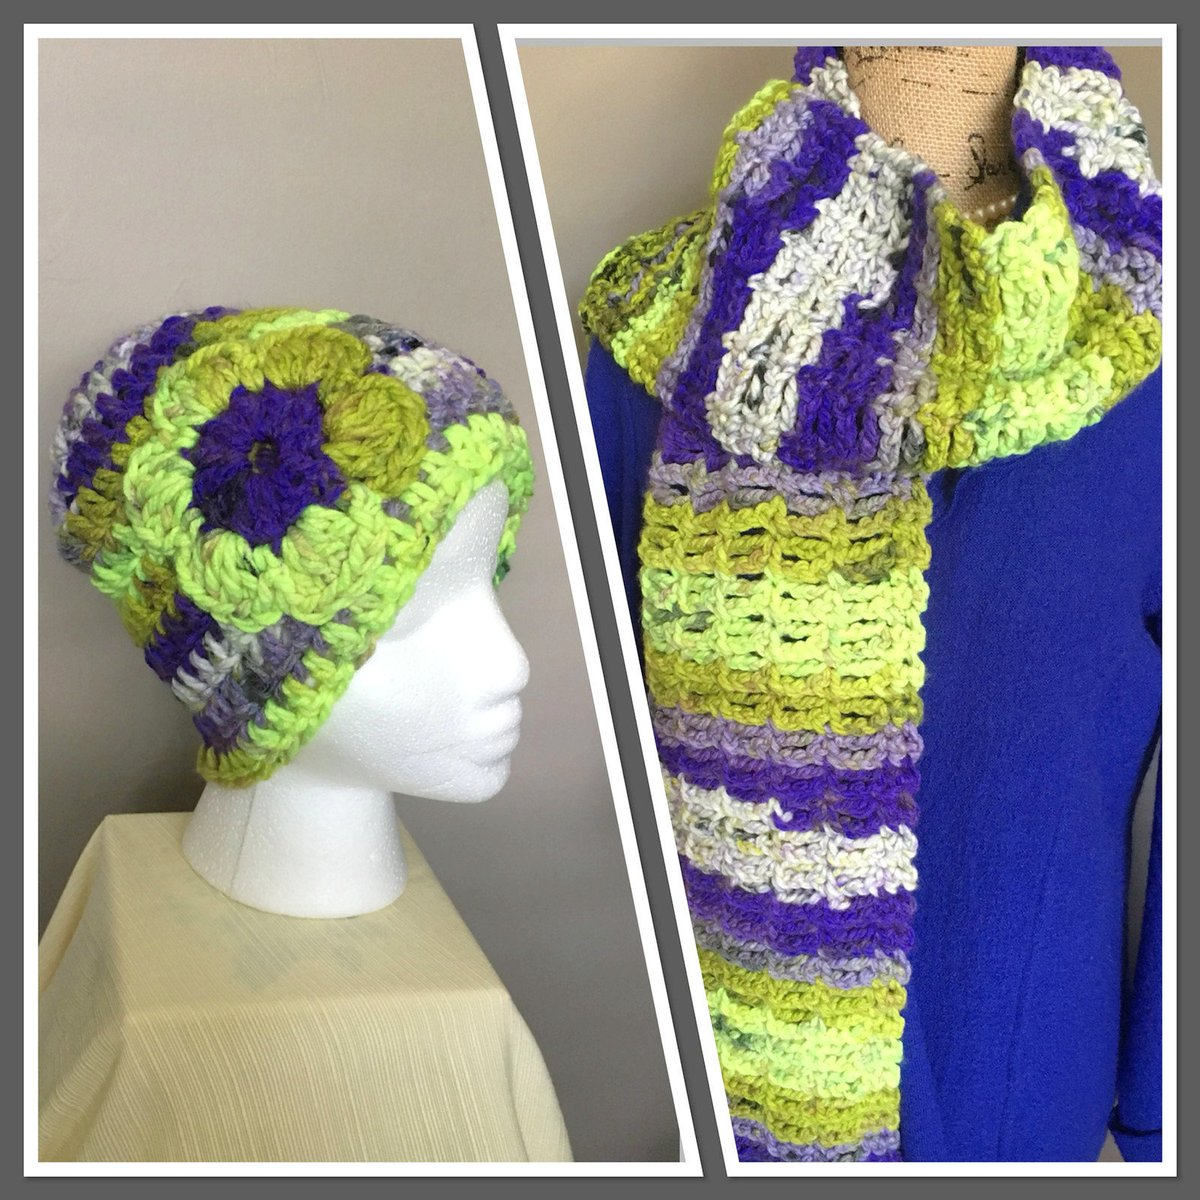 http://ChestnutCrochetShop.etsy.com  Excited to share this from my #etsy shop: Multi Color Crochet Hat and Scarf Set, Flower Hat and Scarf Set, Chunky Wool Scarf and Hat Set, Back to School, Gift for Her,  https://etsy.me/2DtydWv #purple #green #preppy #multicolorscarfpic.twitter.com/U4MyPQ7Yzw